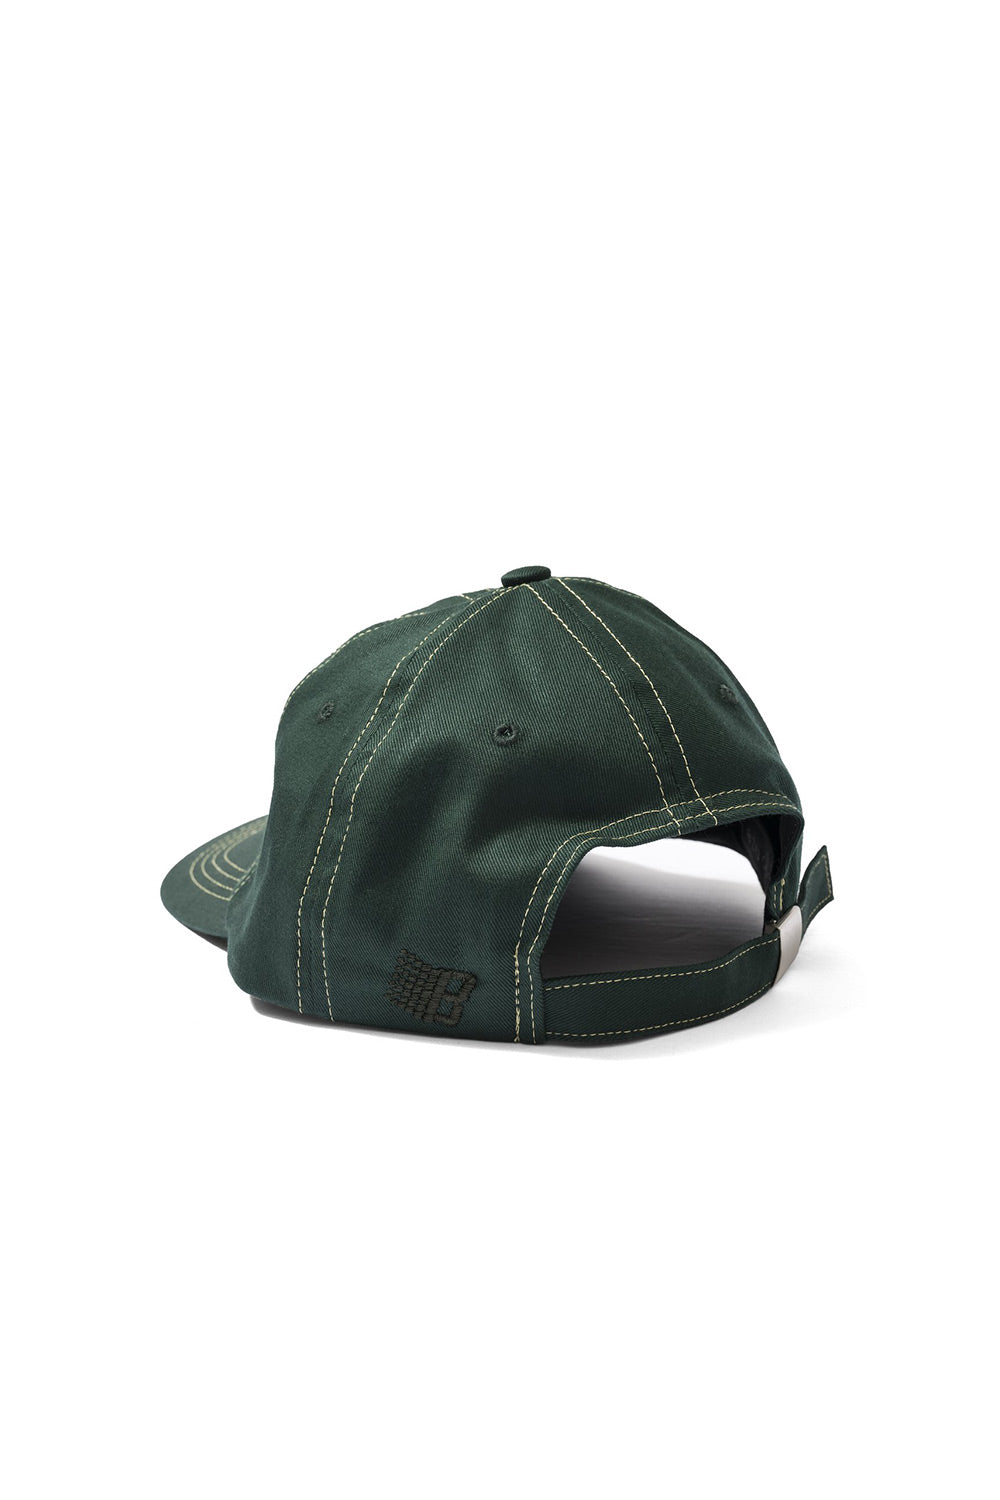 Bronze 56K Bolt Boy Hat - Green